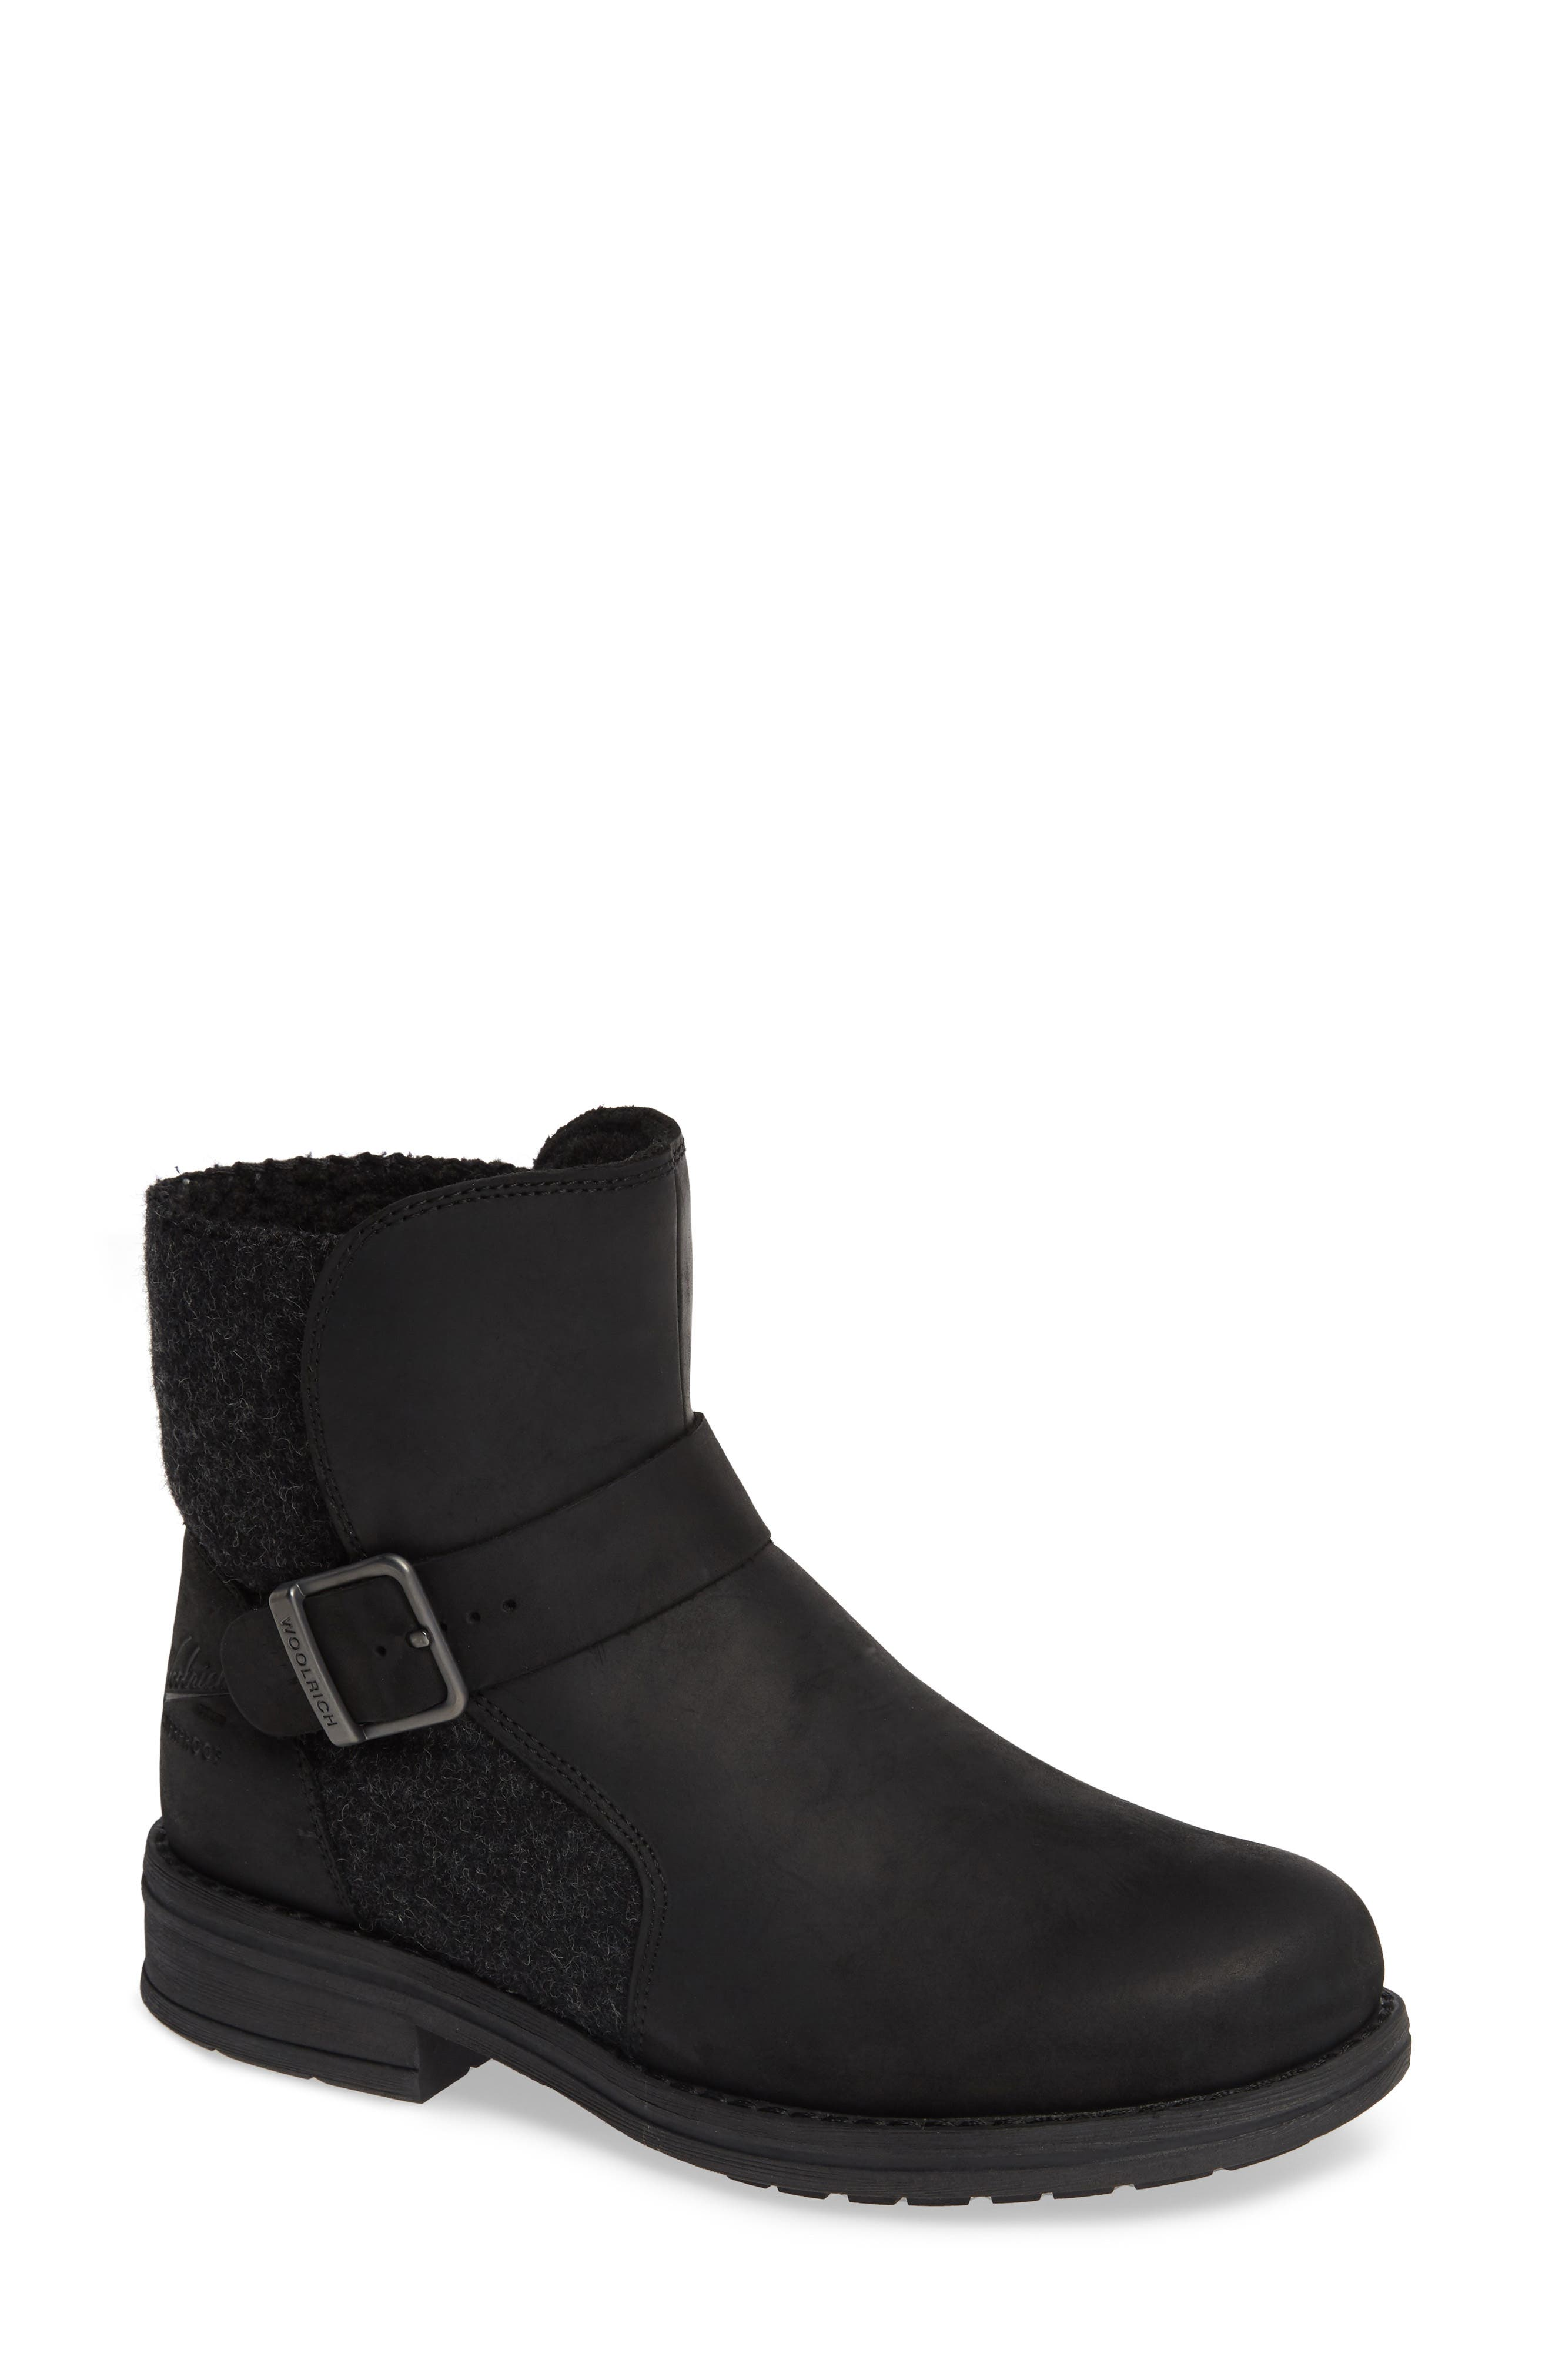 Pioneer Bootie,                             Main thumbnail 1, color,                             BLACK LEATHER